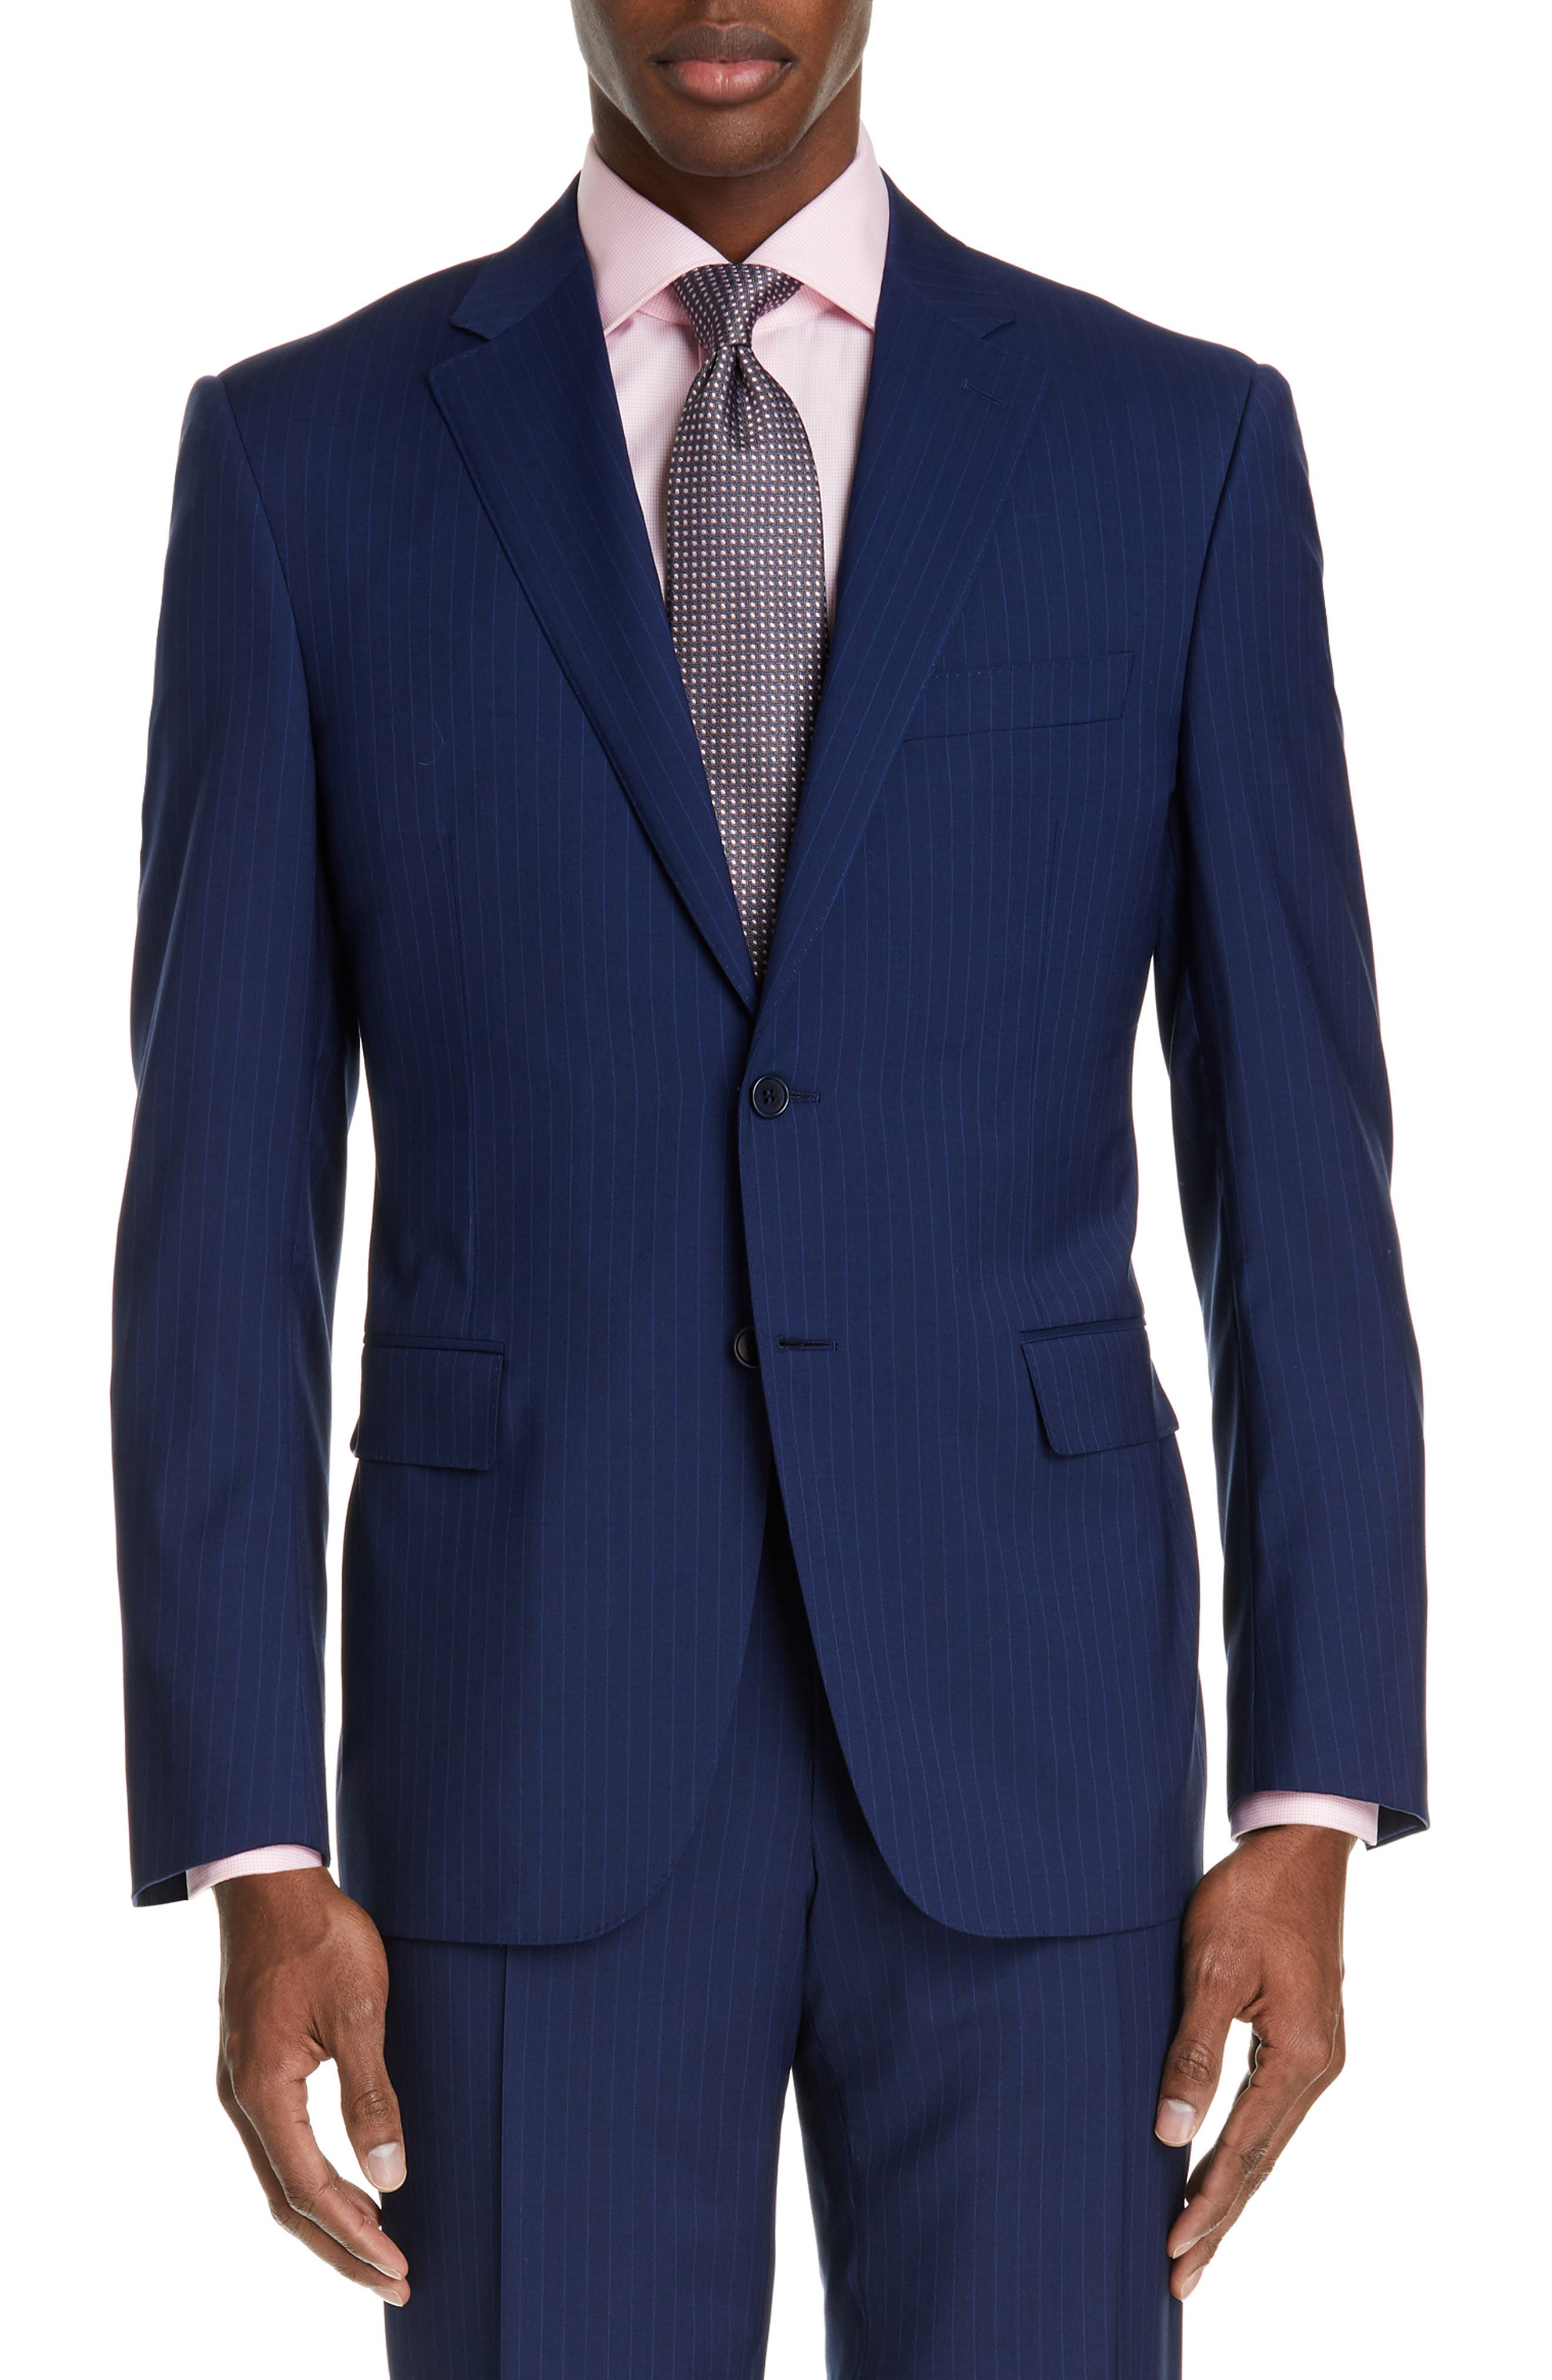 CANALI, Sienna Classic Fit Stripe Wool Suit, Alternate thumbnail 5, color, BLUE